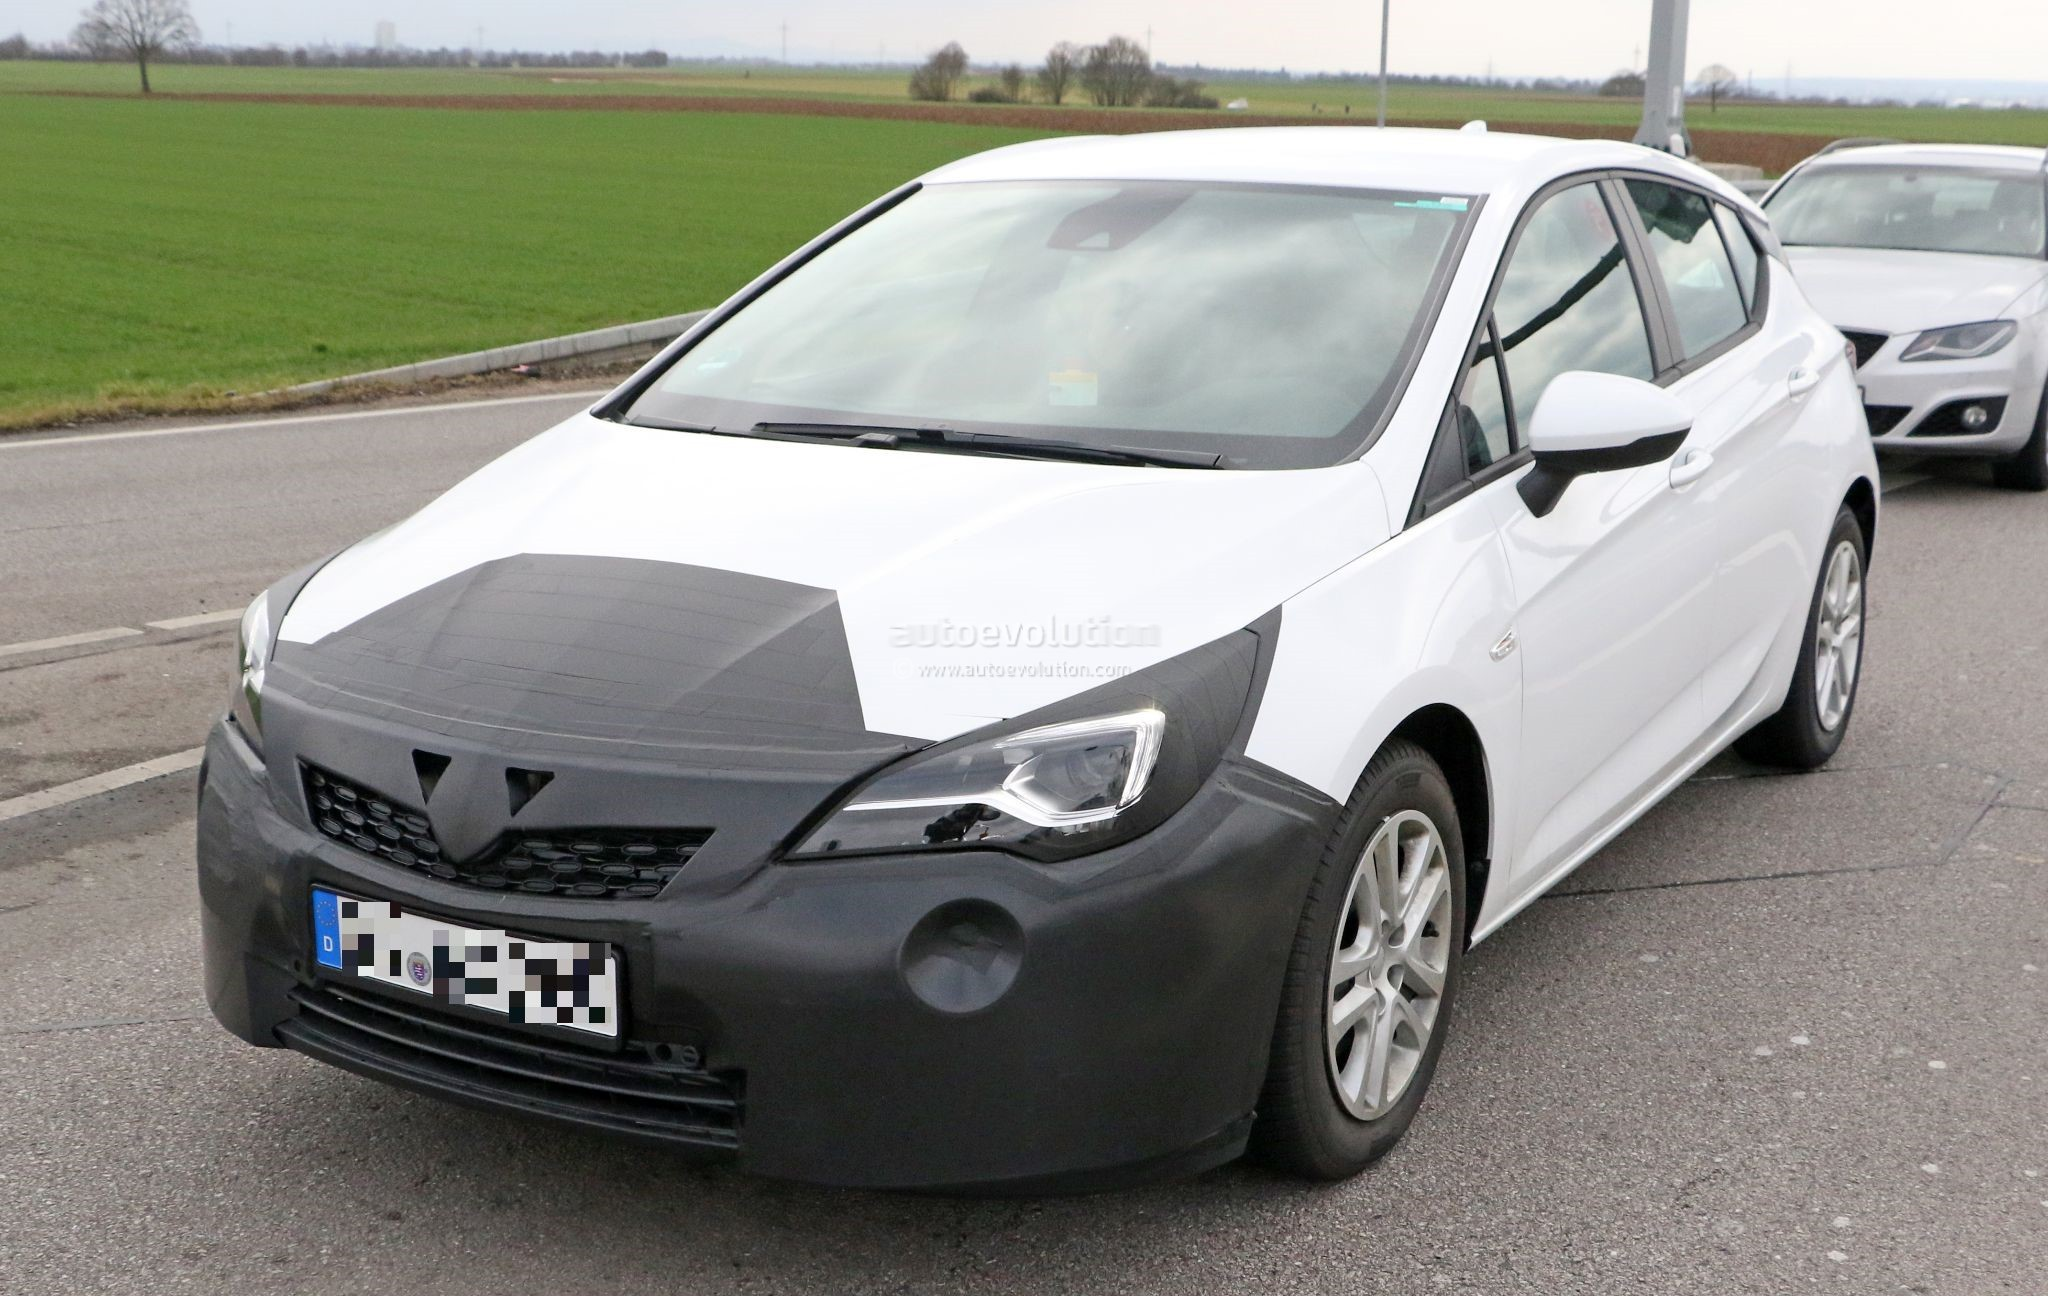 Spyshots: 2019 Opel Astra Facelift Testing In Germany ...